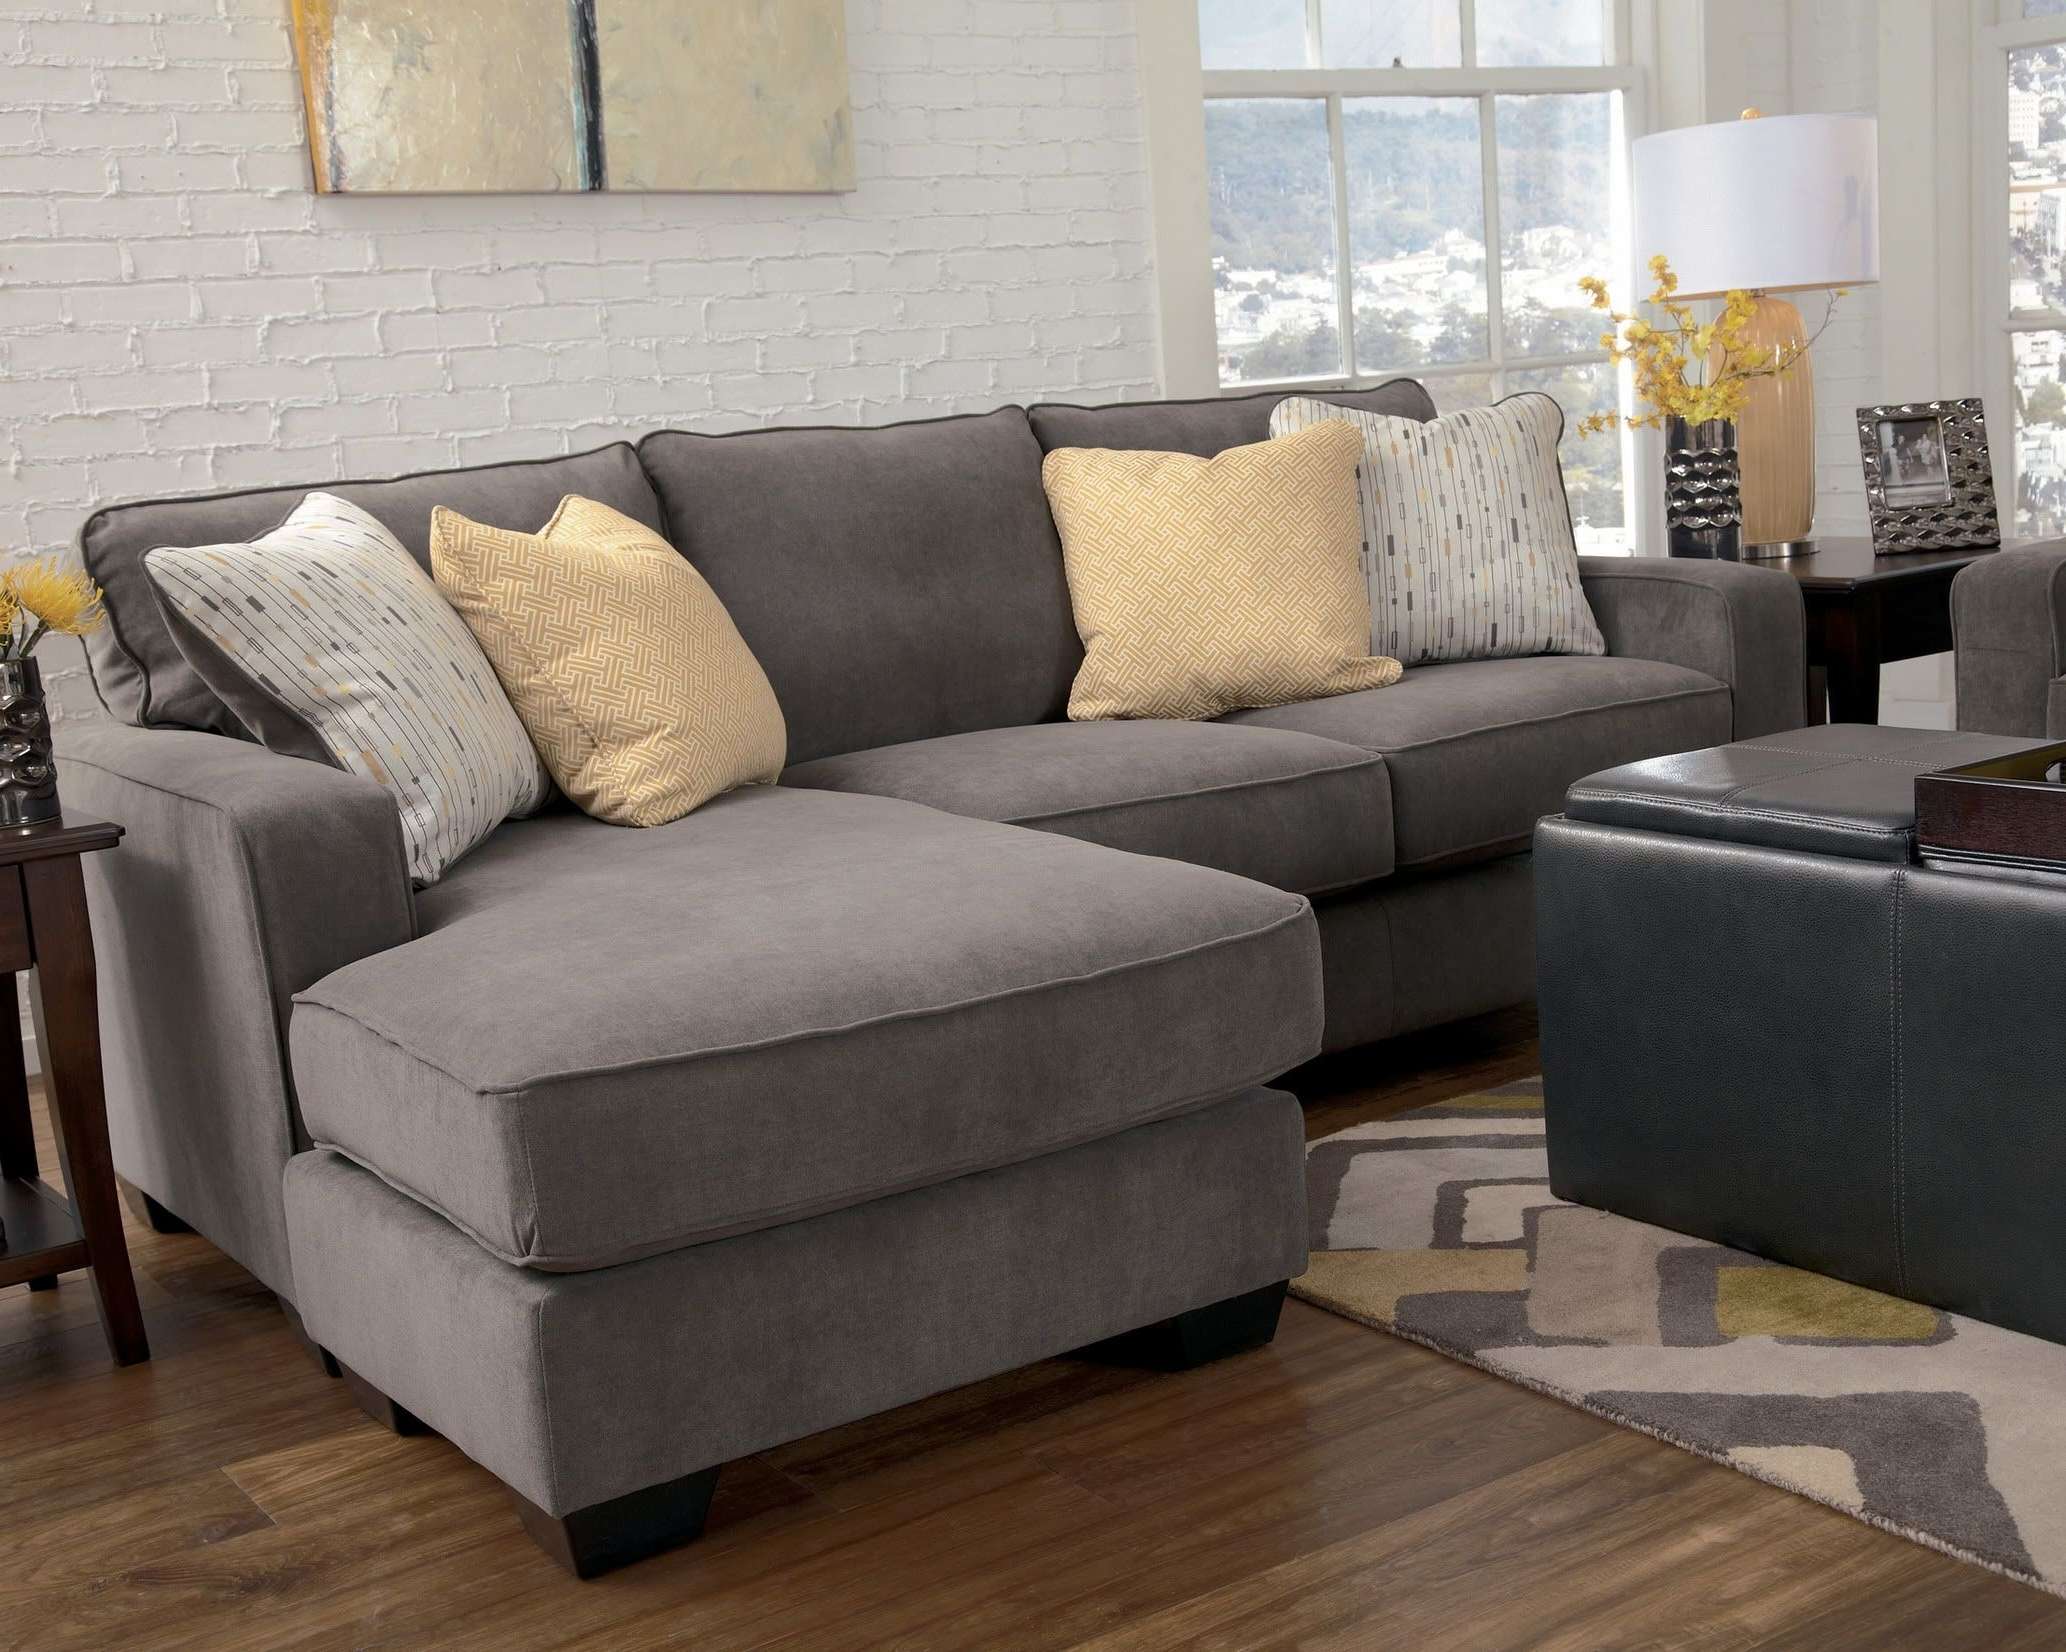 Recent Marble Contemporary Sofa Chaise Living Room Furniture Fabric With Reversible Chaise Sofas (View 8 of 15)